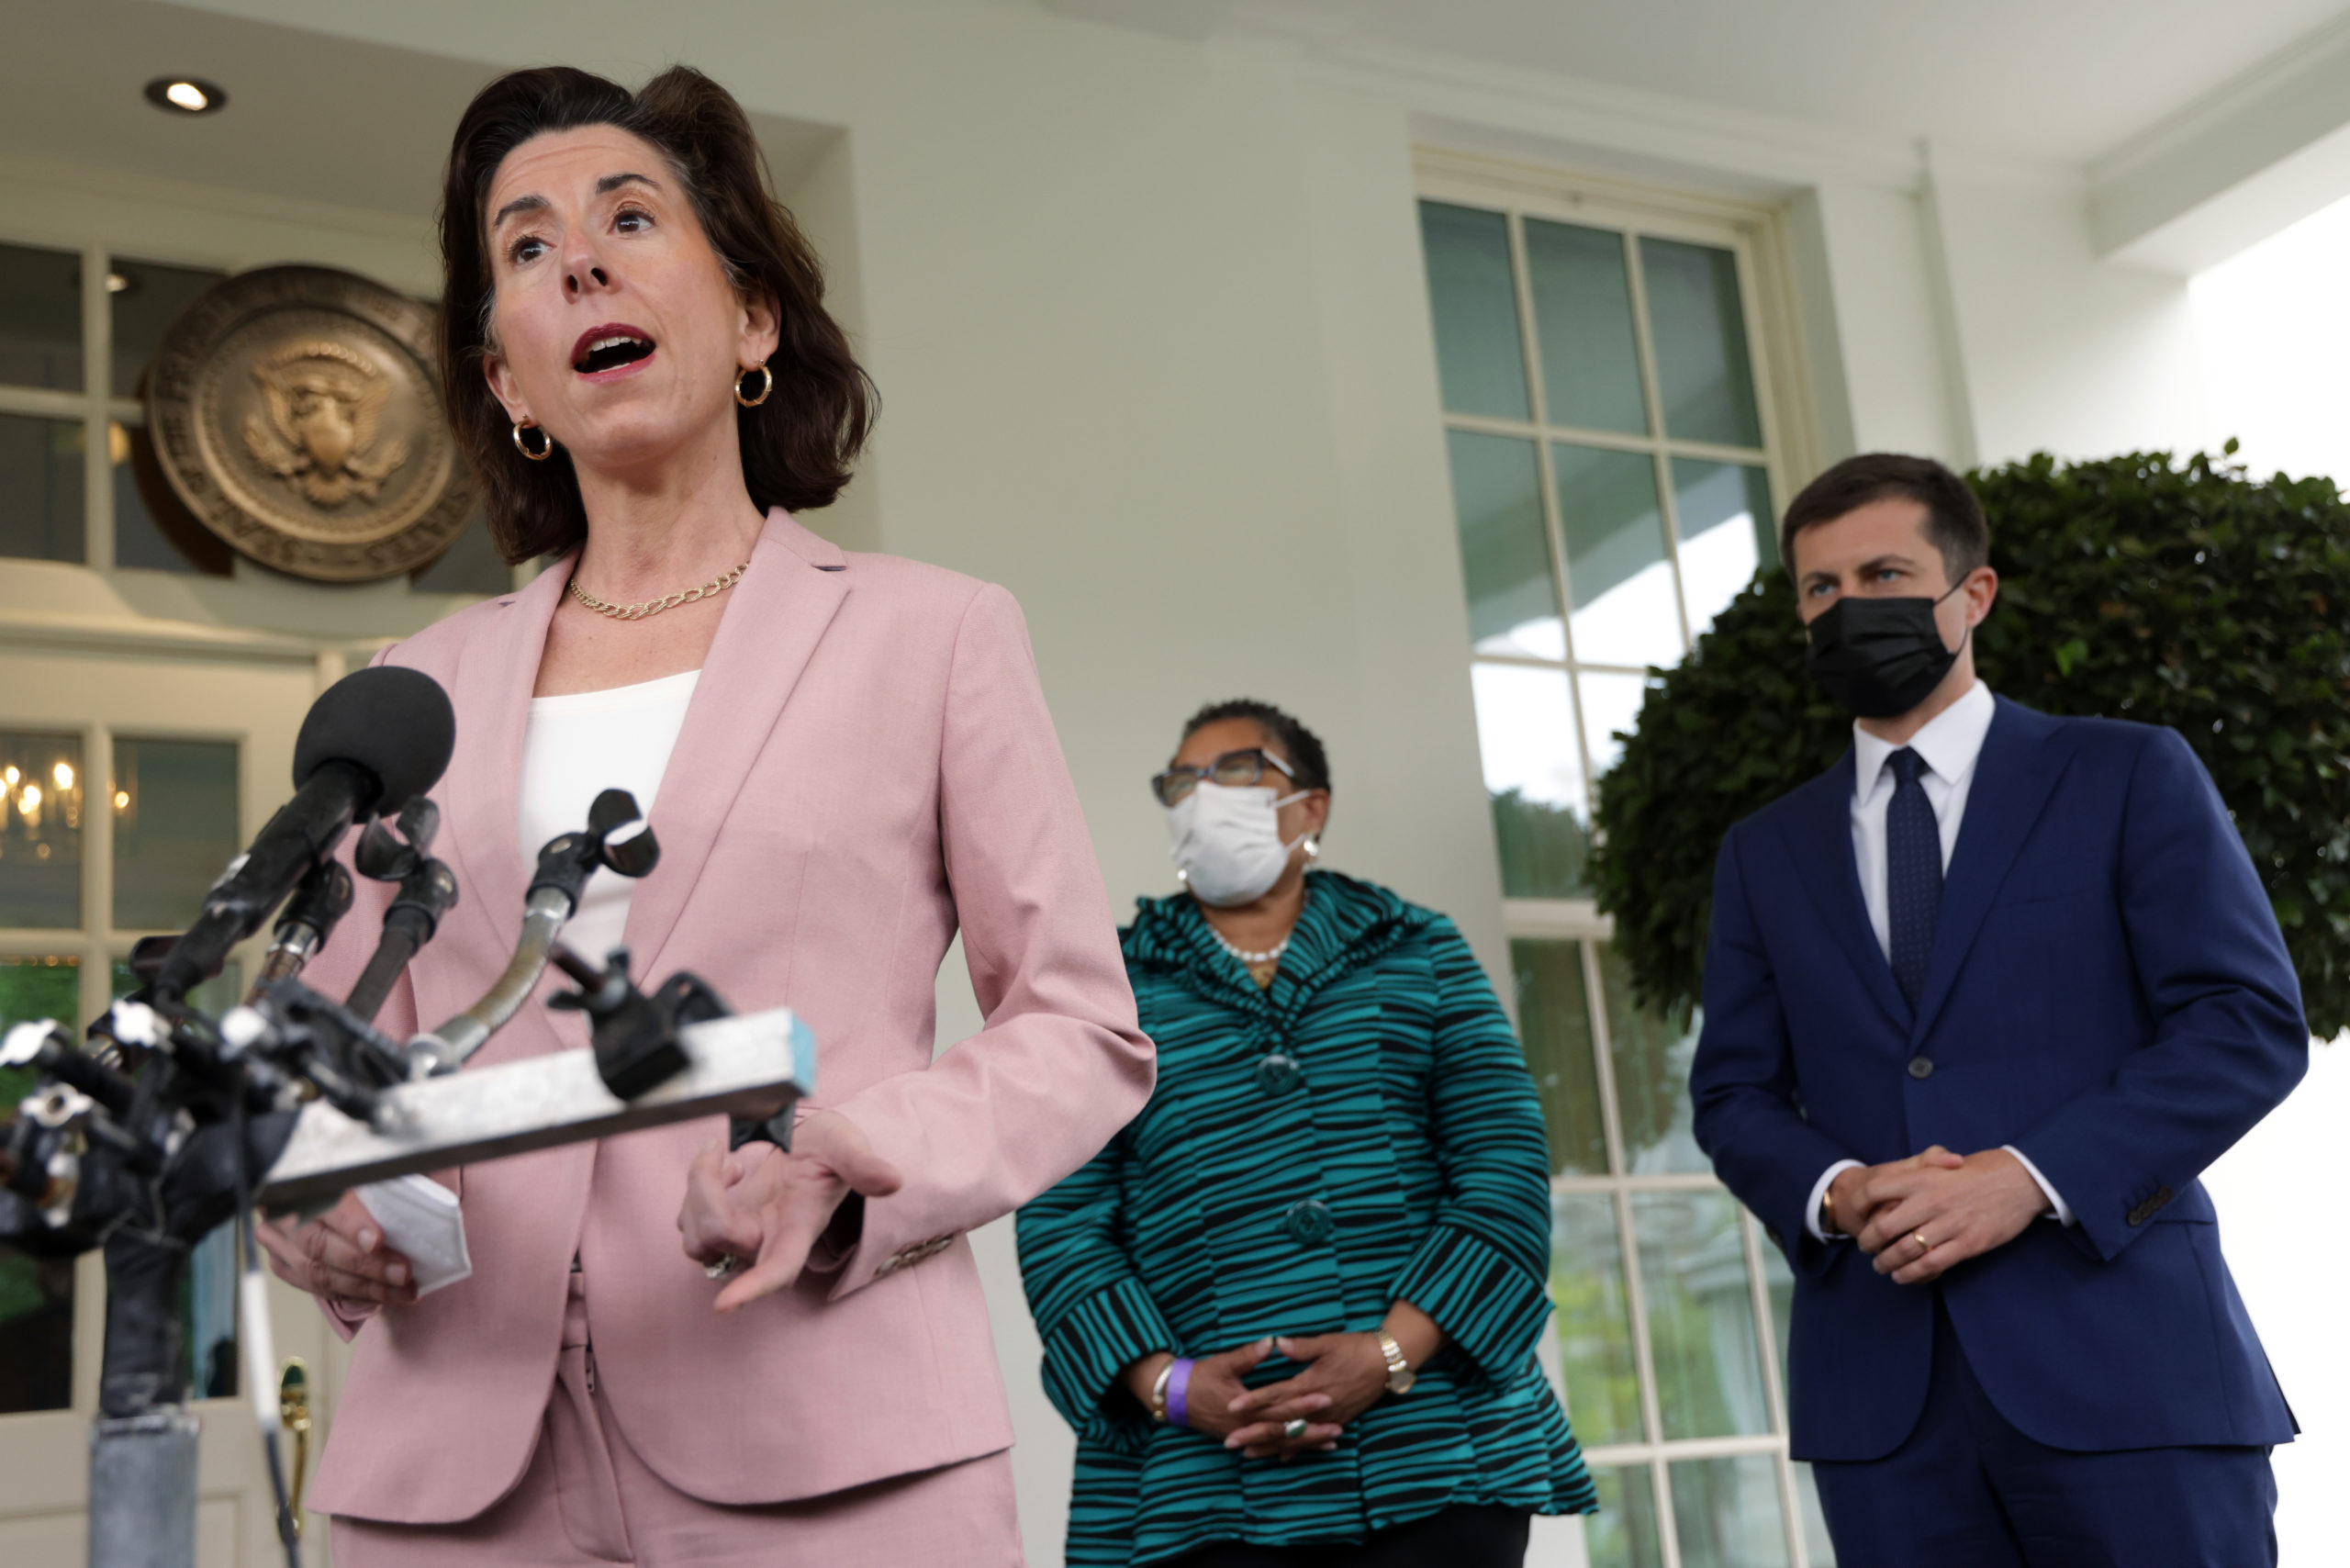 Commerce Secretary Gina Raimondo and other members of the White House jobs task force speak to reporters on May 7. (Alex Wong/Getty Images)